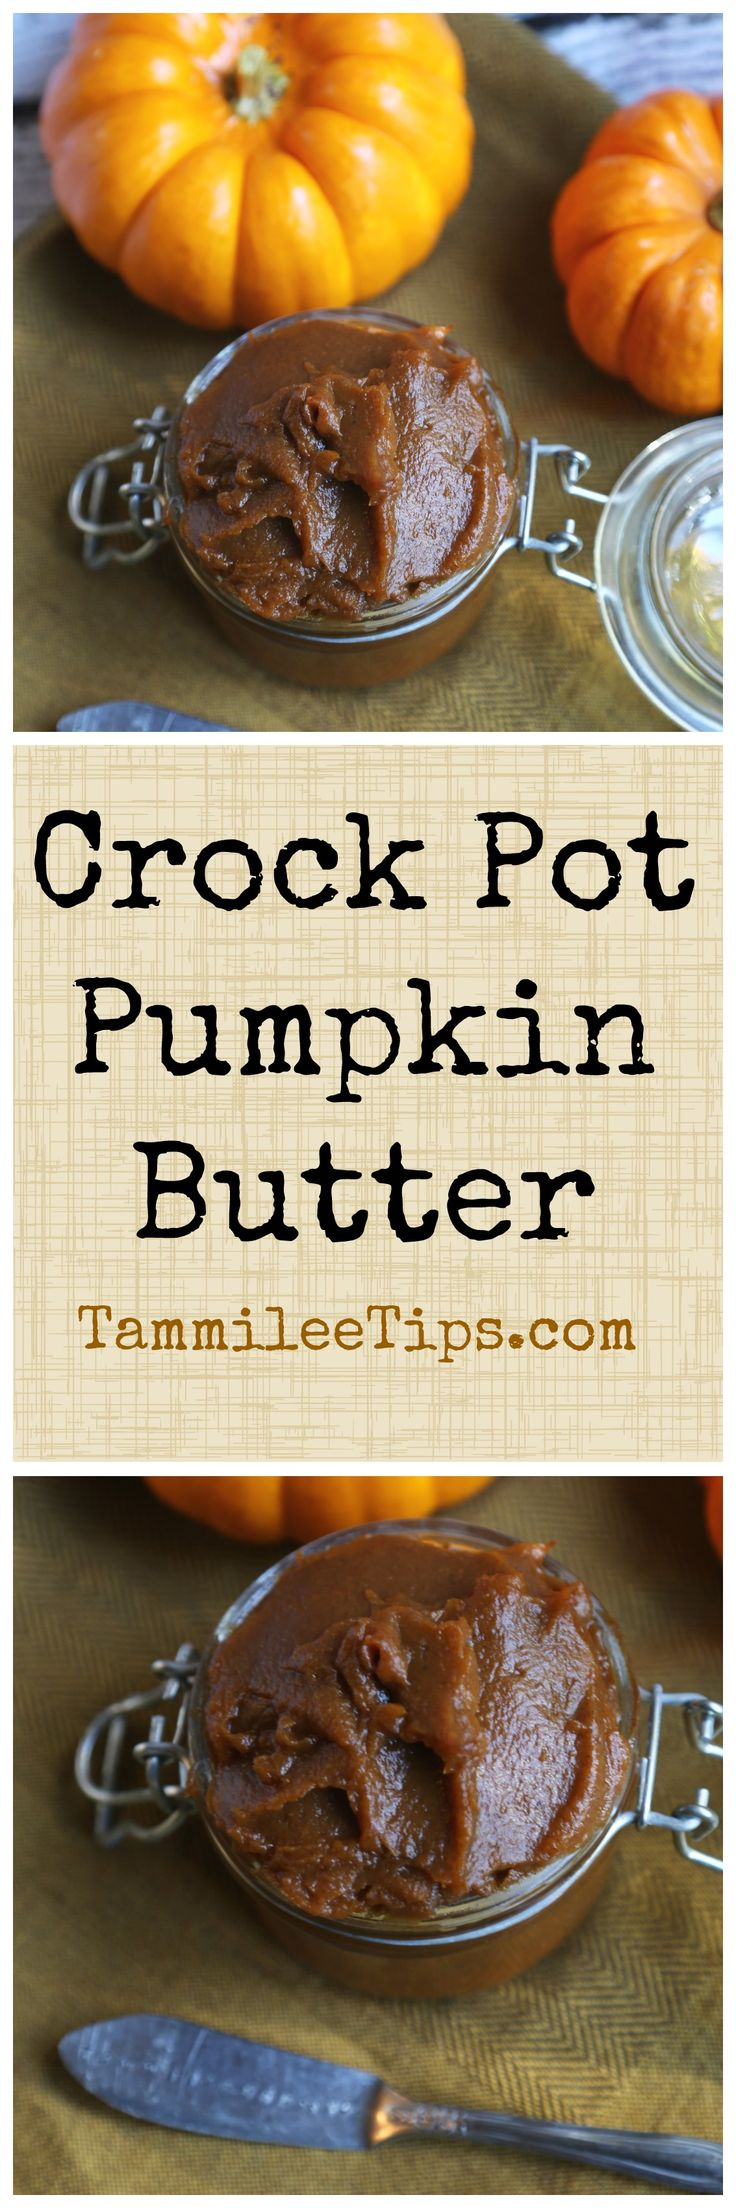 Easy Crock Pot Pumpkin Butter Recipe! Perfect for canning, on bread, for dessert or a sweet treat. The slow cooker does all the work! Also a great DIY Gift for Fall, Harvest Parties or Halloween parties.